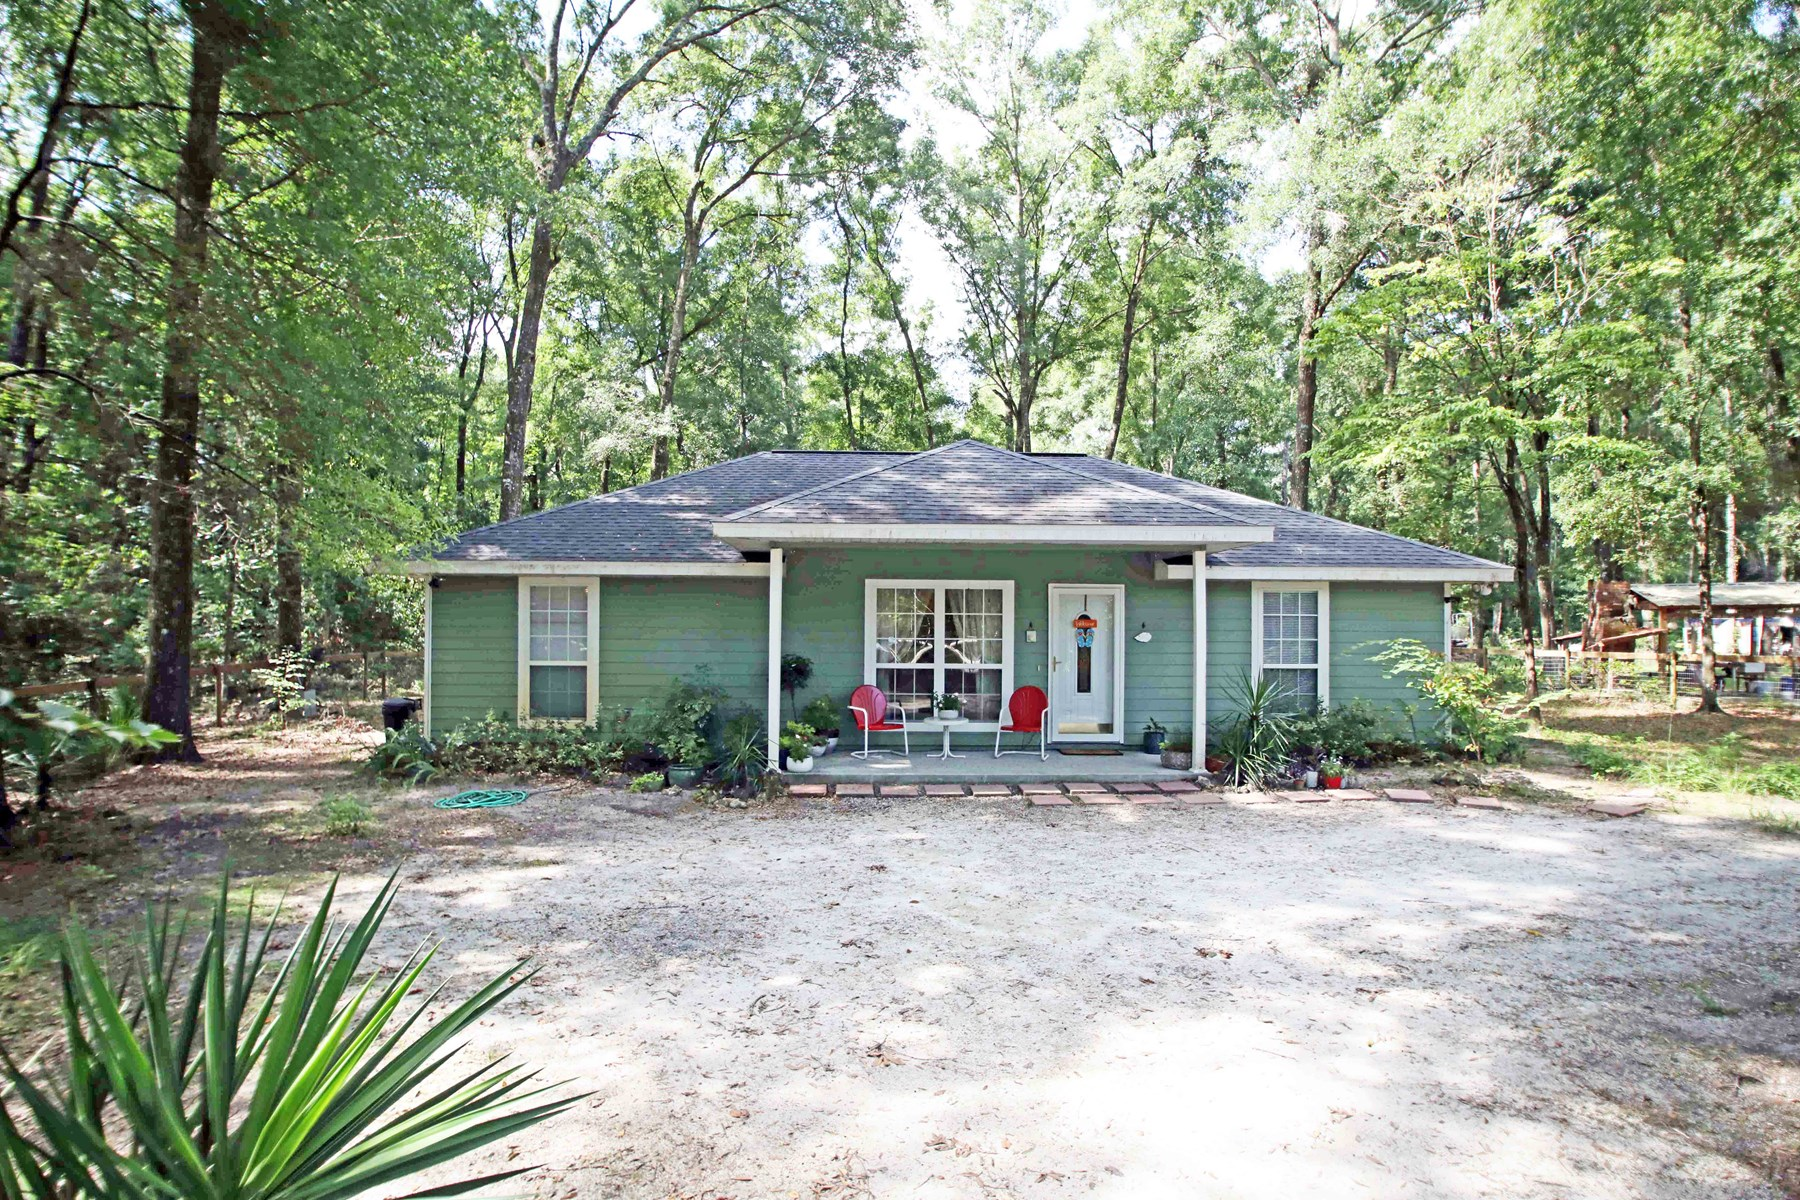 3BR/2BA HOME IN THREE RIVERS, SUWANNEE, FLORIDA